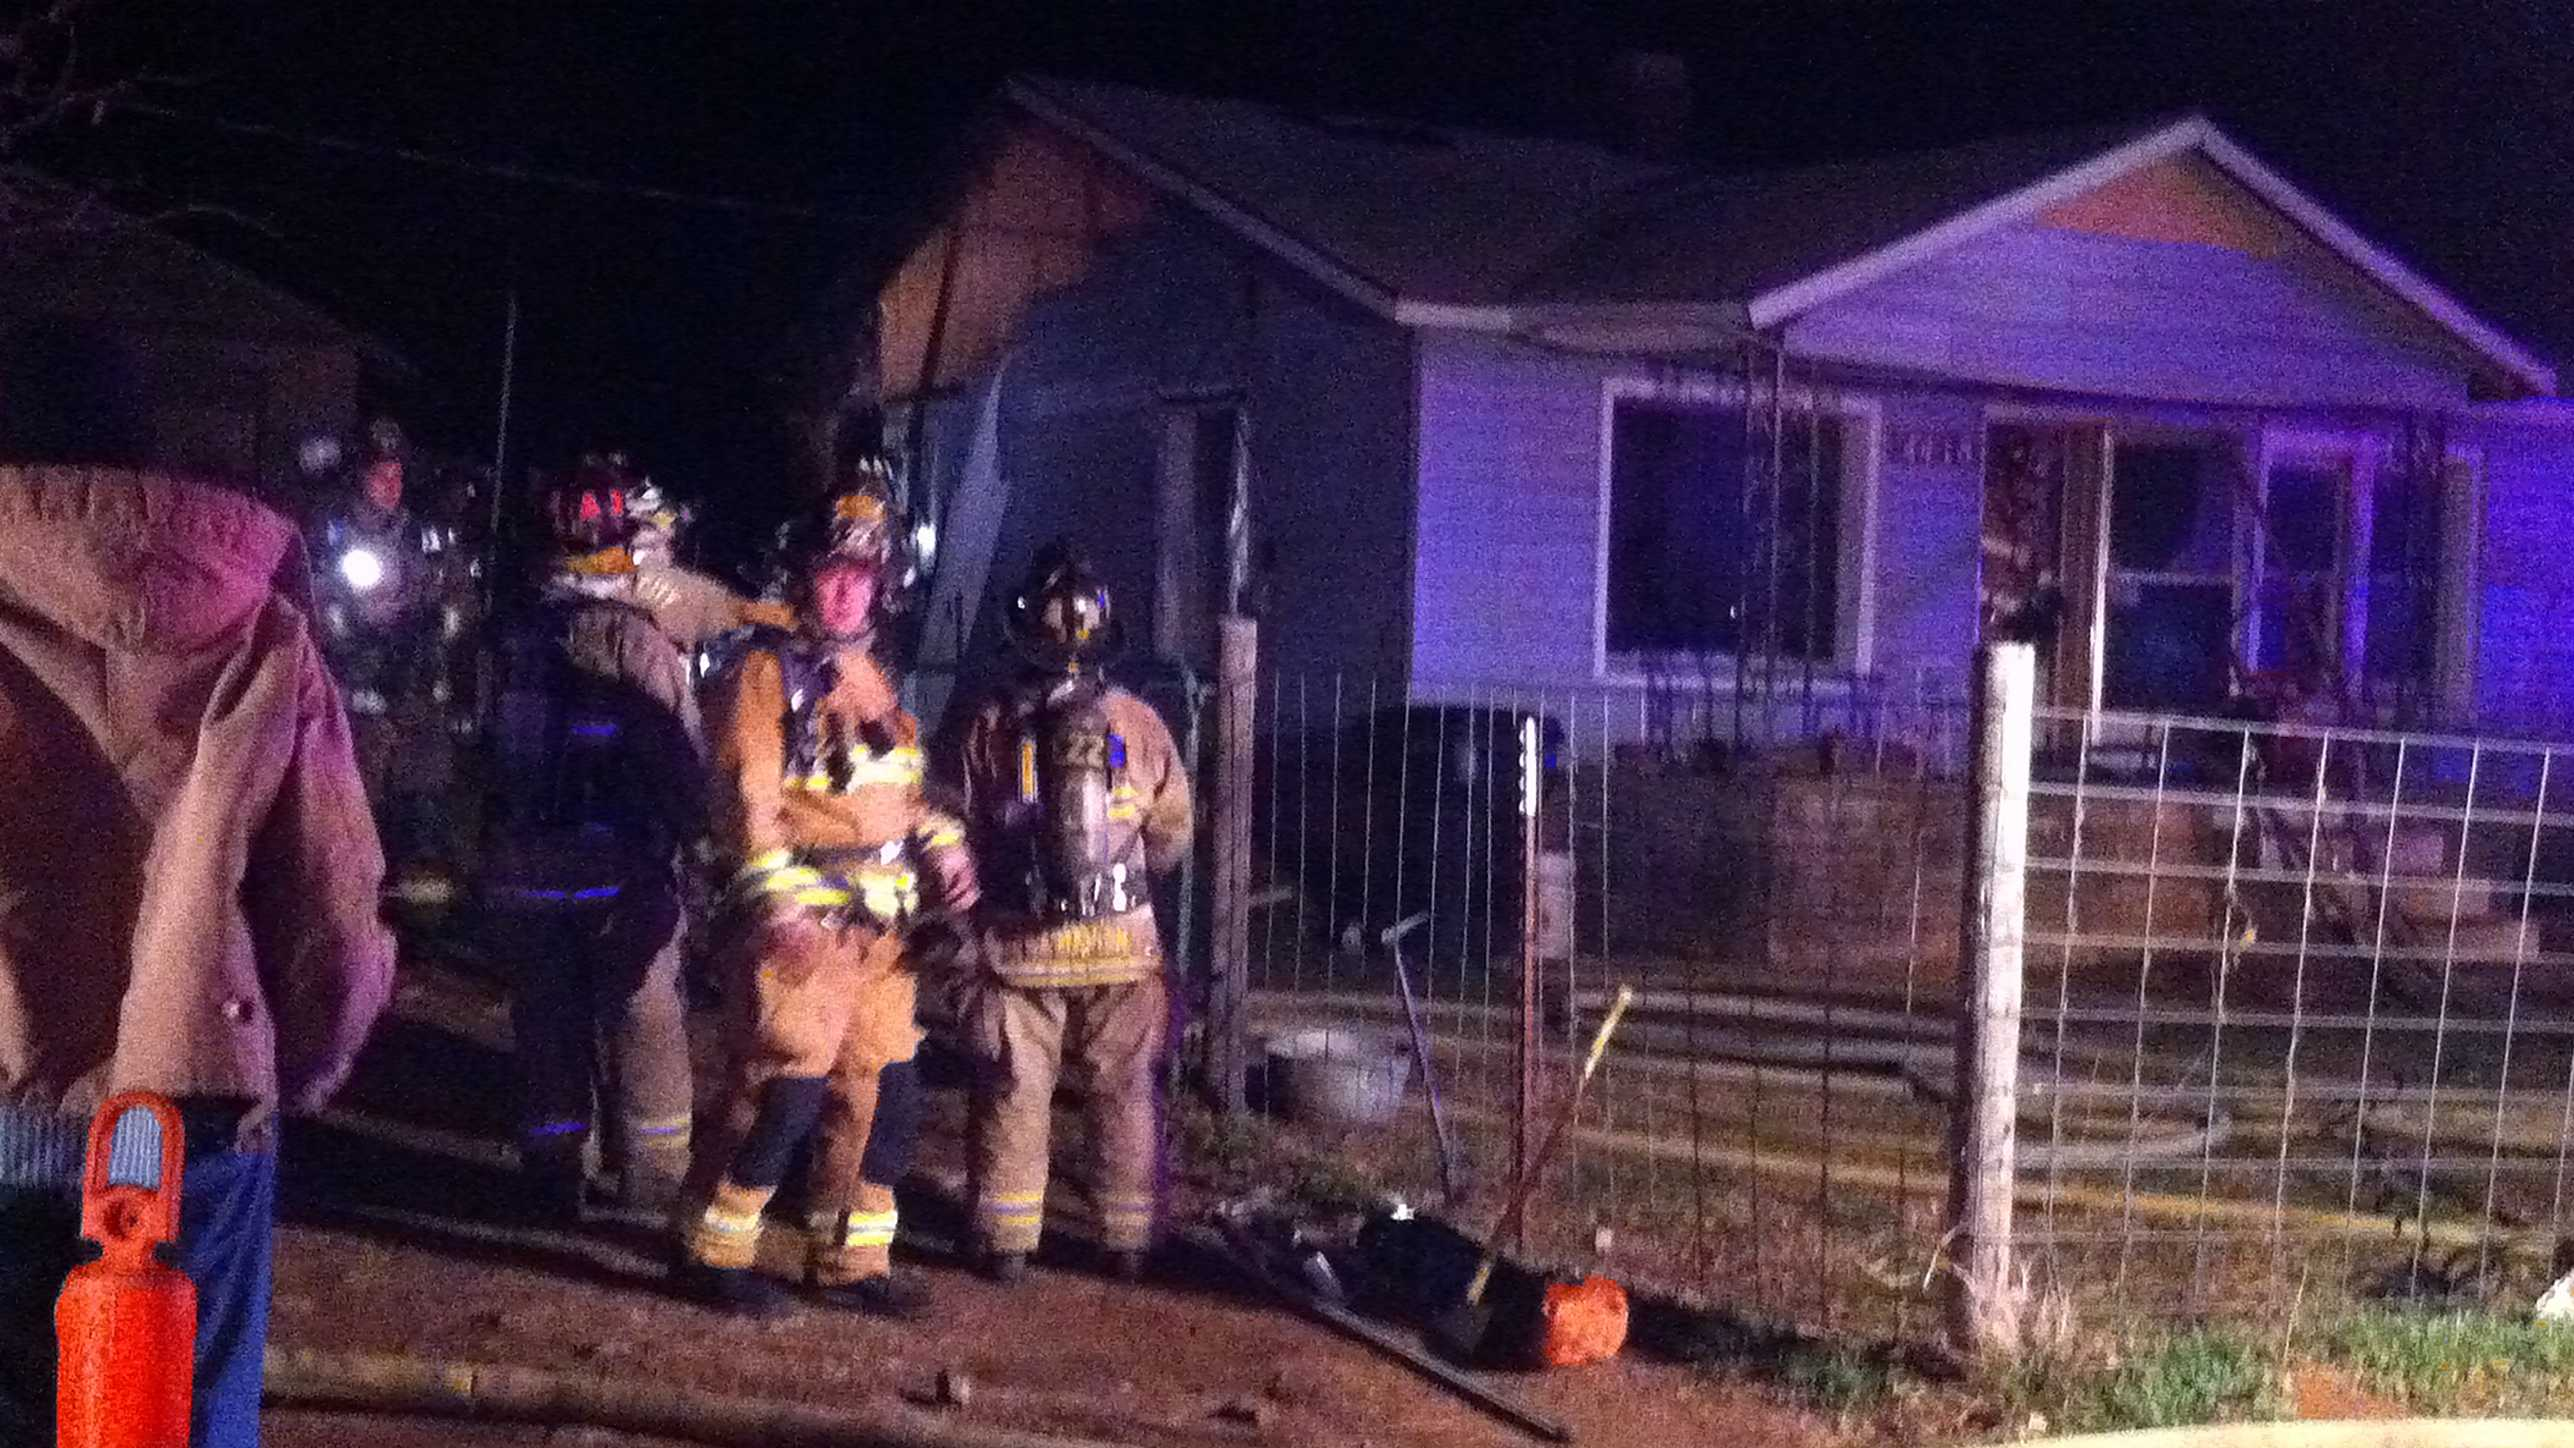 Firefighters battle a house fire in northeast Oklahoma City.